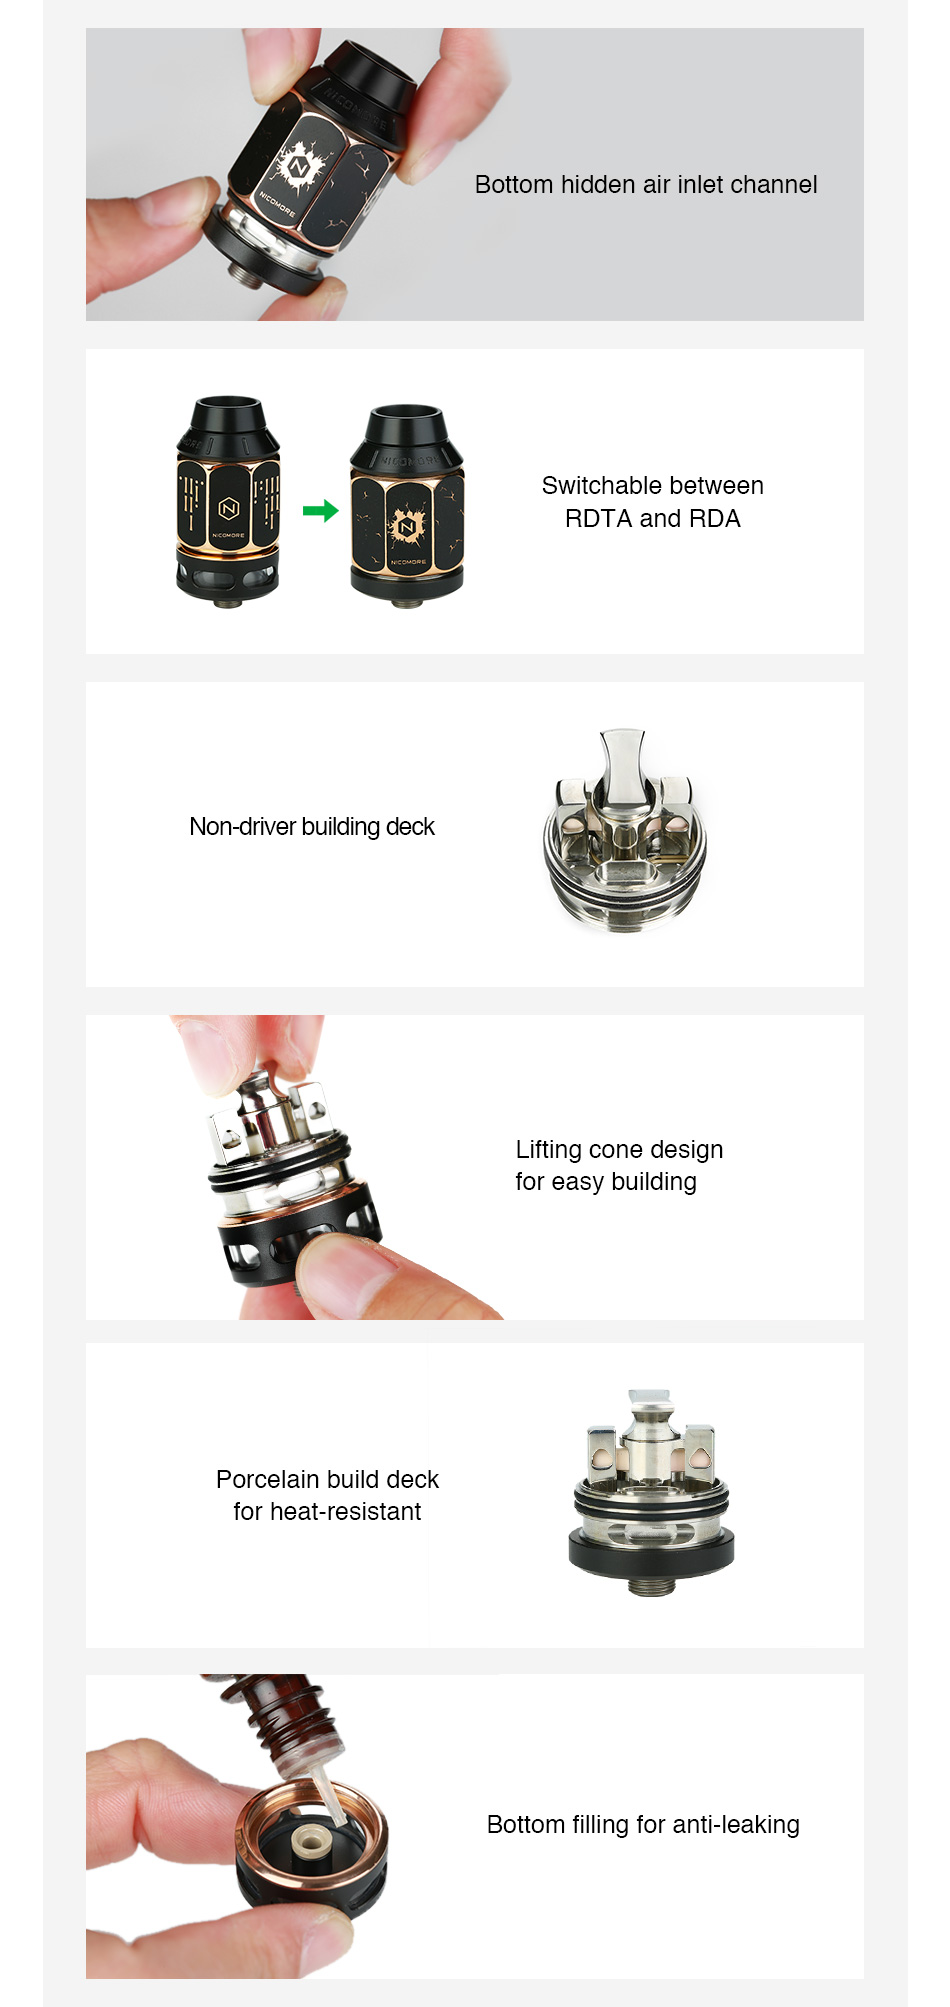 https://d1844rainhf76j.cloudfront.net/goods_desc/Nicomore-M1-RDA_RDTA-2ml_06_8e3c4b.jpg